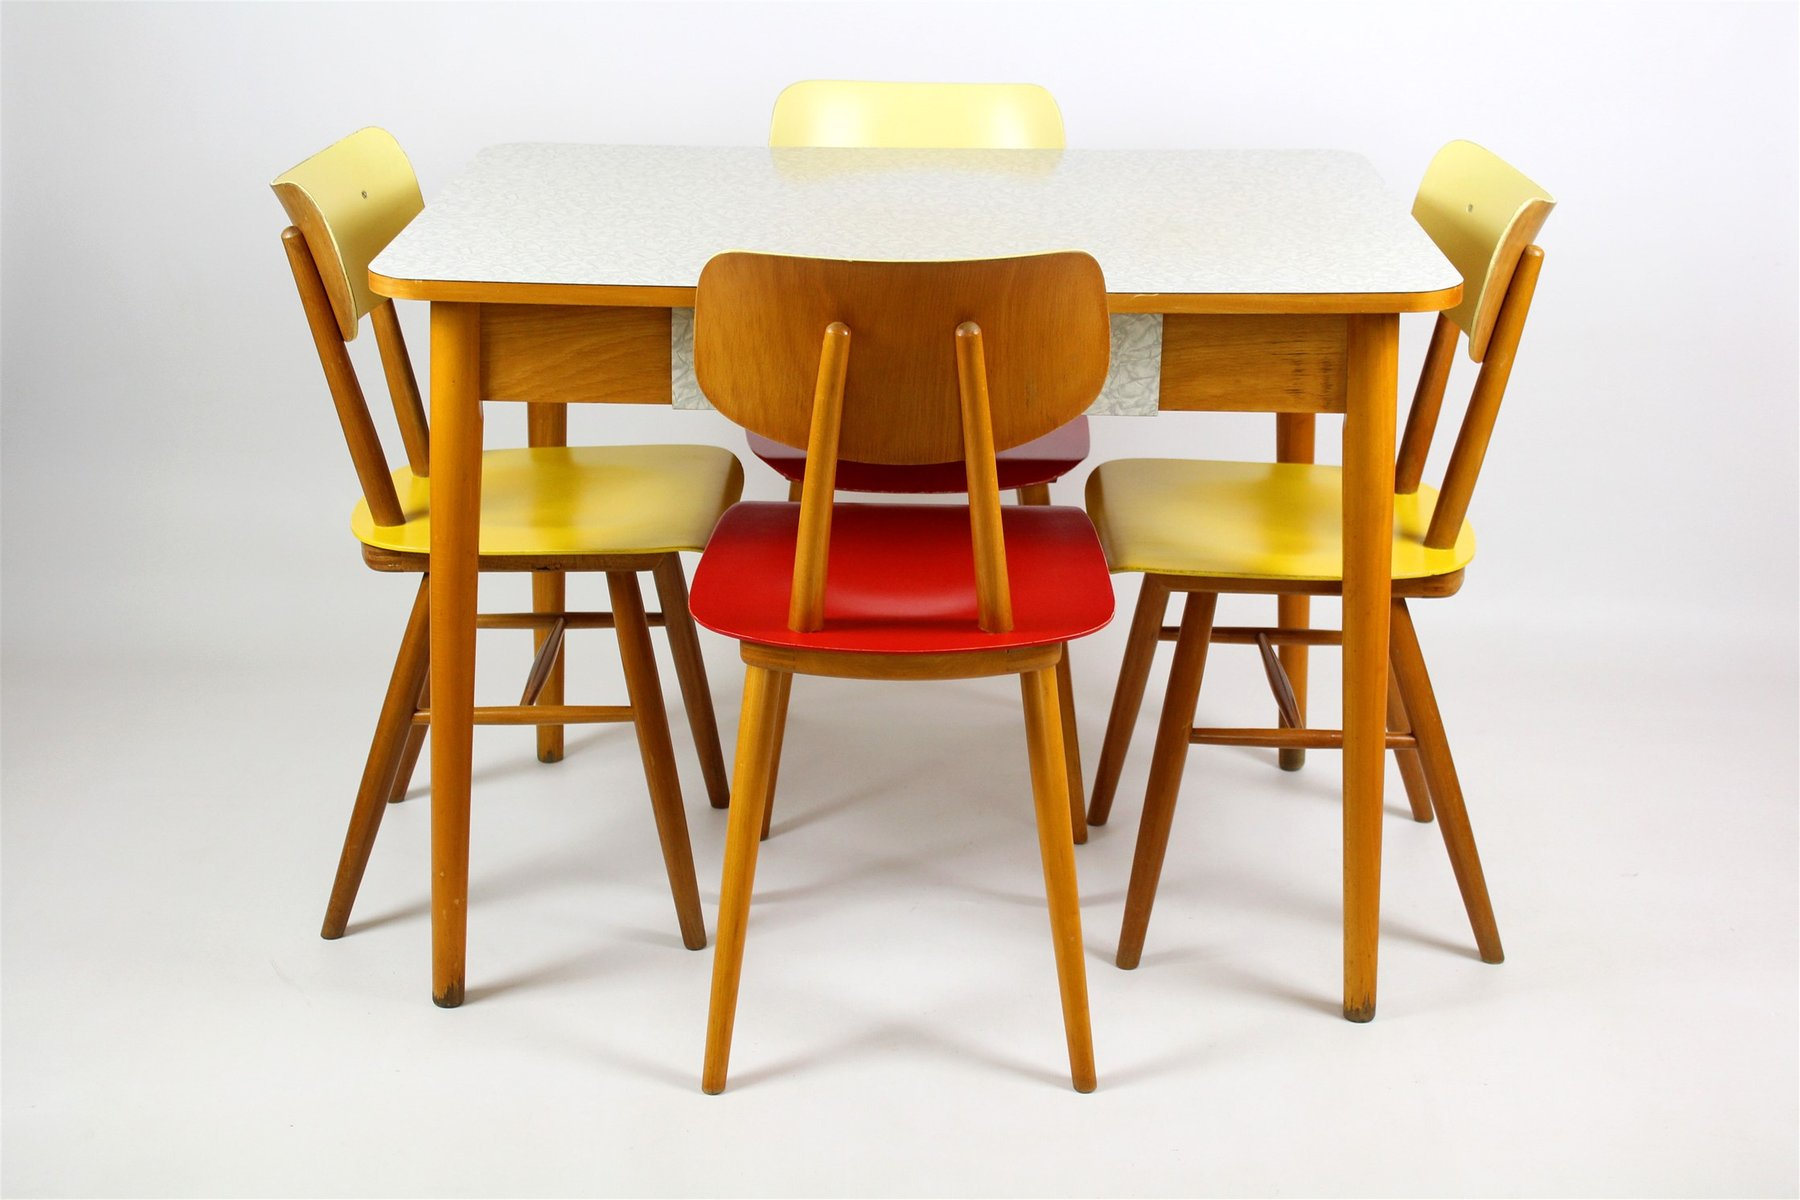 formica kitchen table from jitona 1960s for sale at pamono. Black Bedroom Furniture Sets. Home Design Ideas